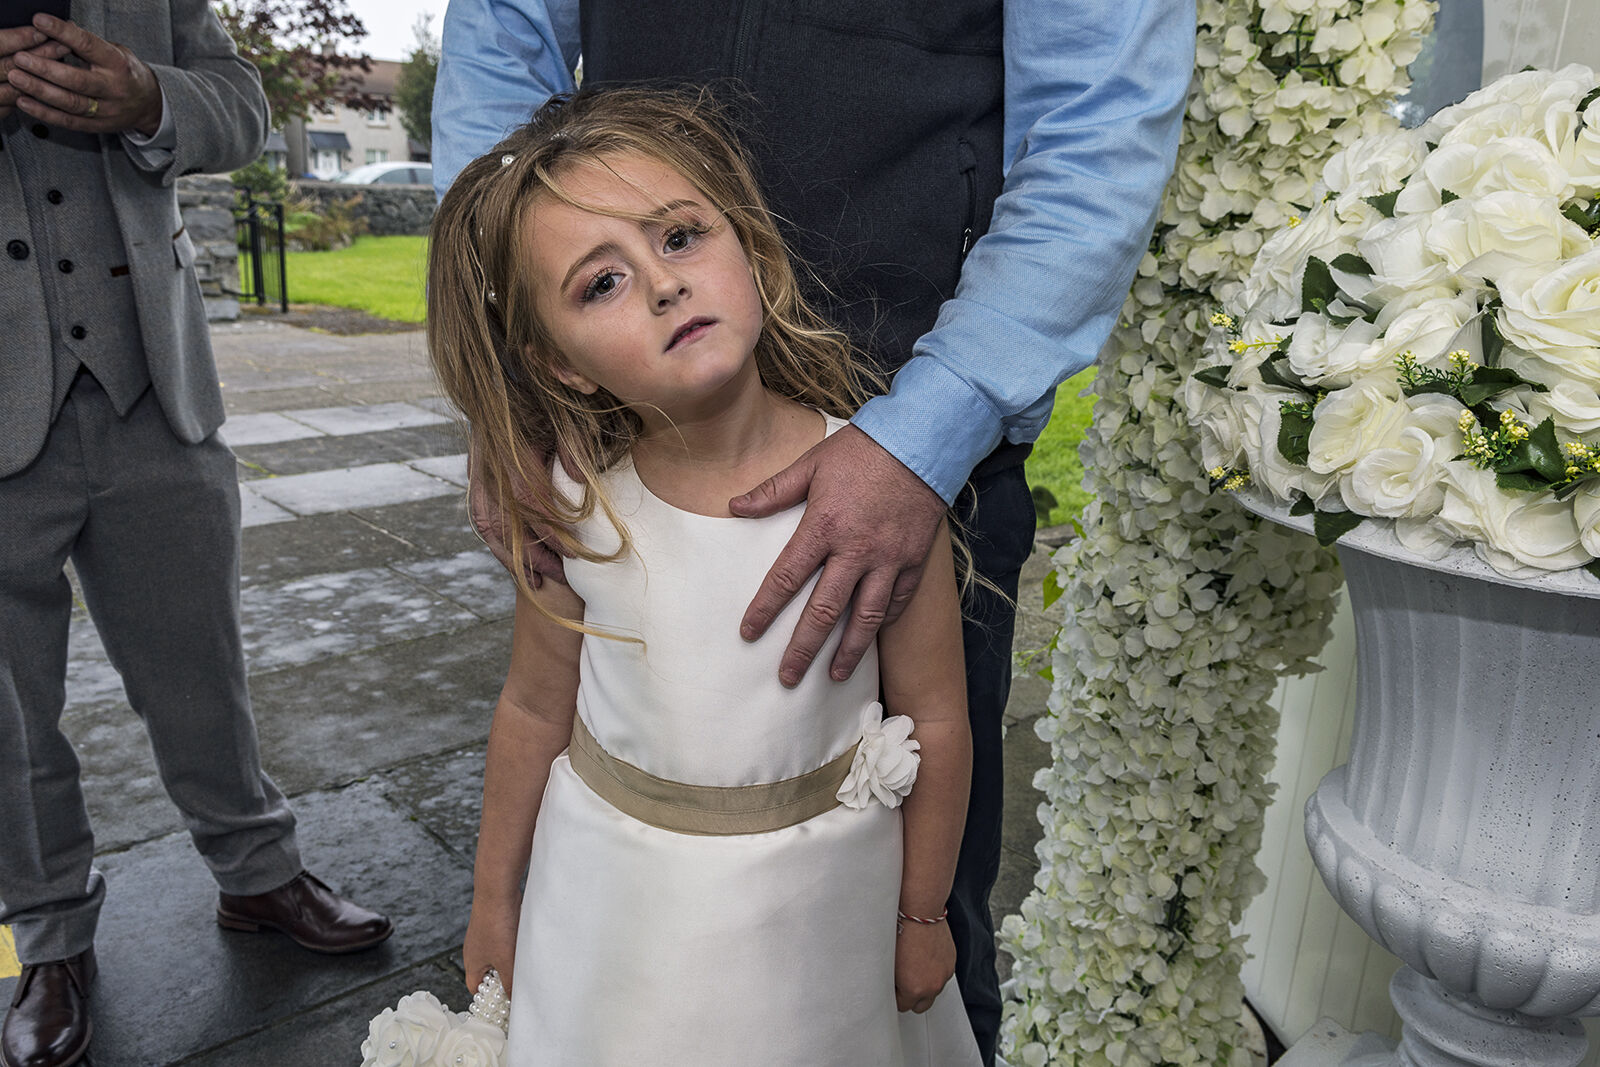 Lucia with Her Father's Hand, Galway, Ireland 2020